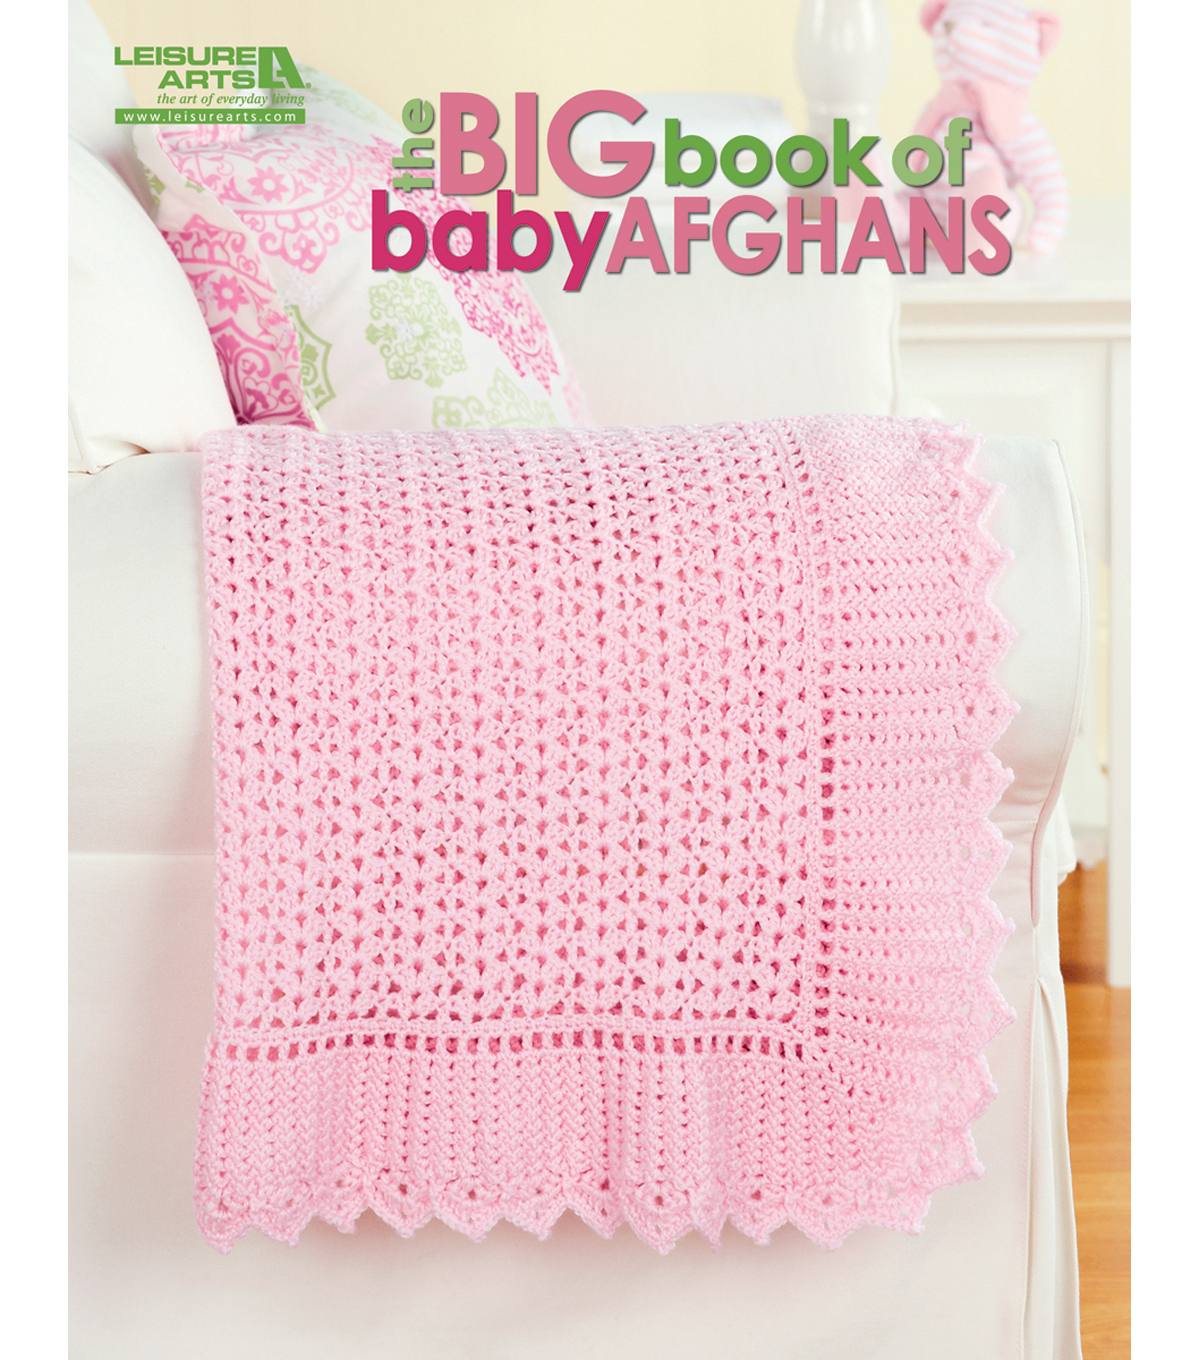 Books patterns for yarn needle art crafts joann leisure arts the big book of baby afghans bankloansurffo Image collections